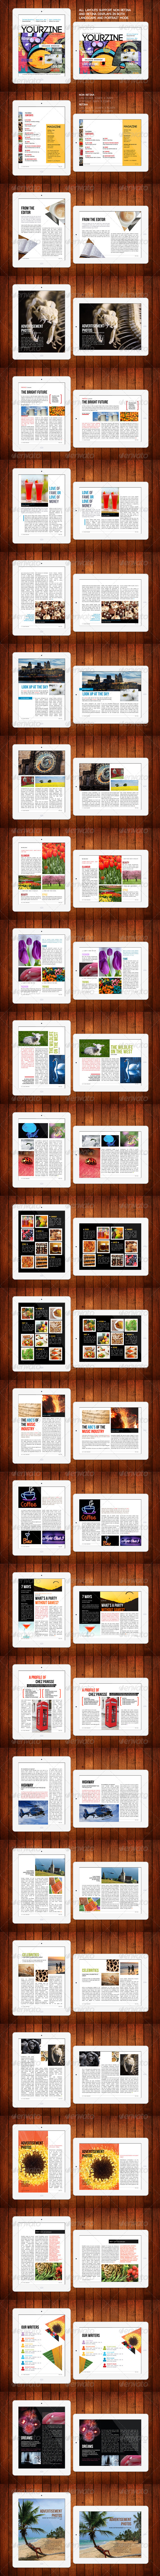 GraphicRiver iPad Tablet Magazine Template 28 Pages 4681868